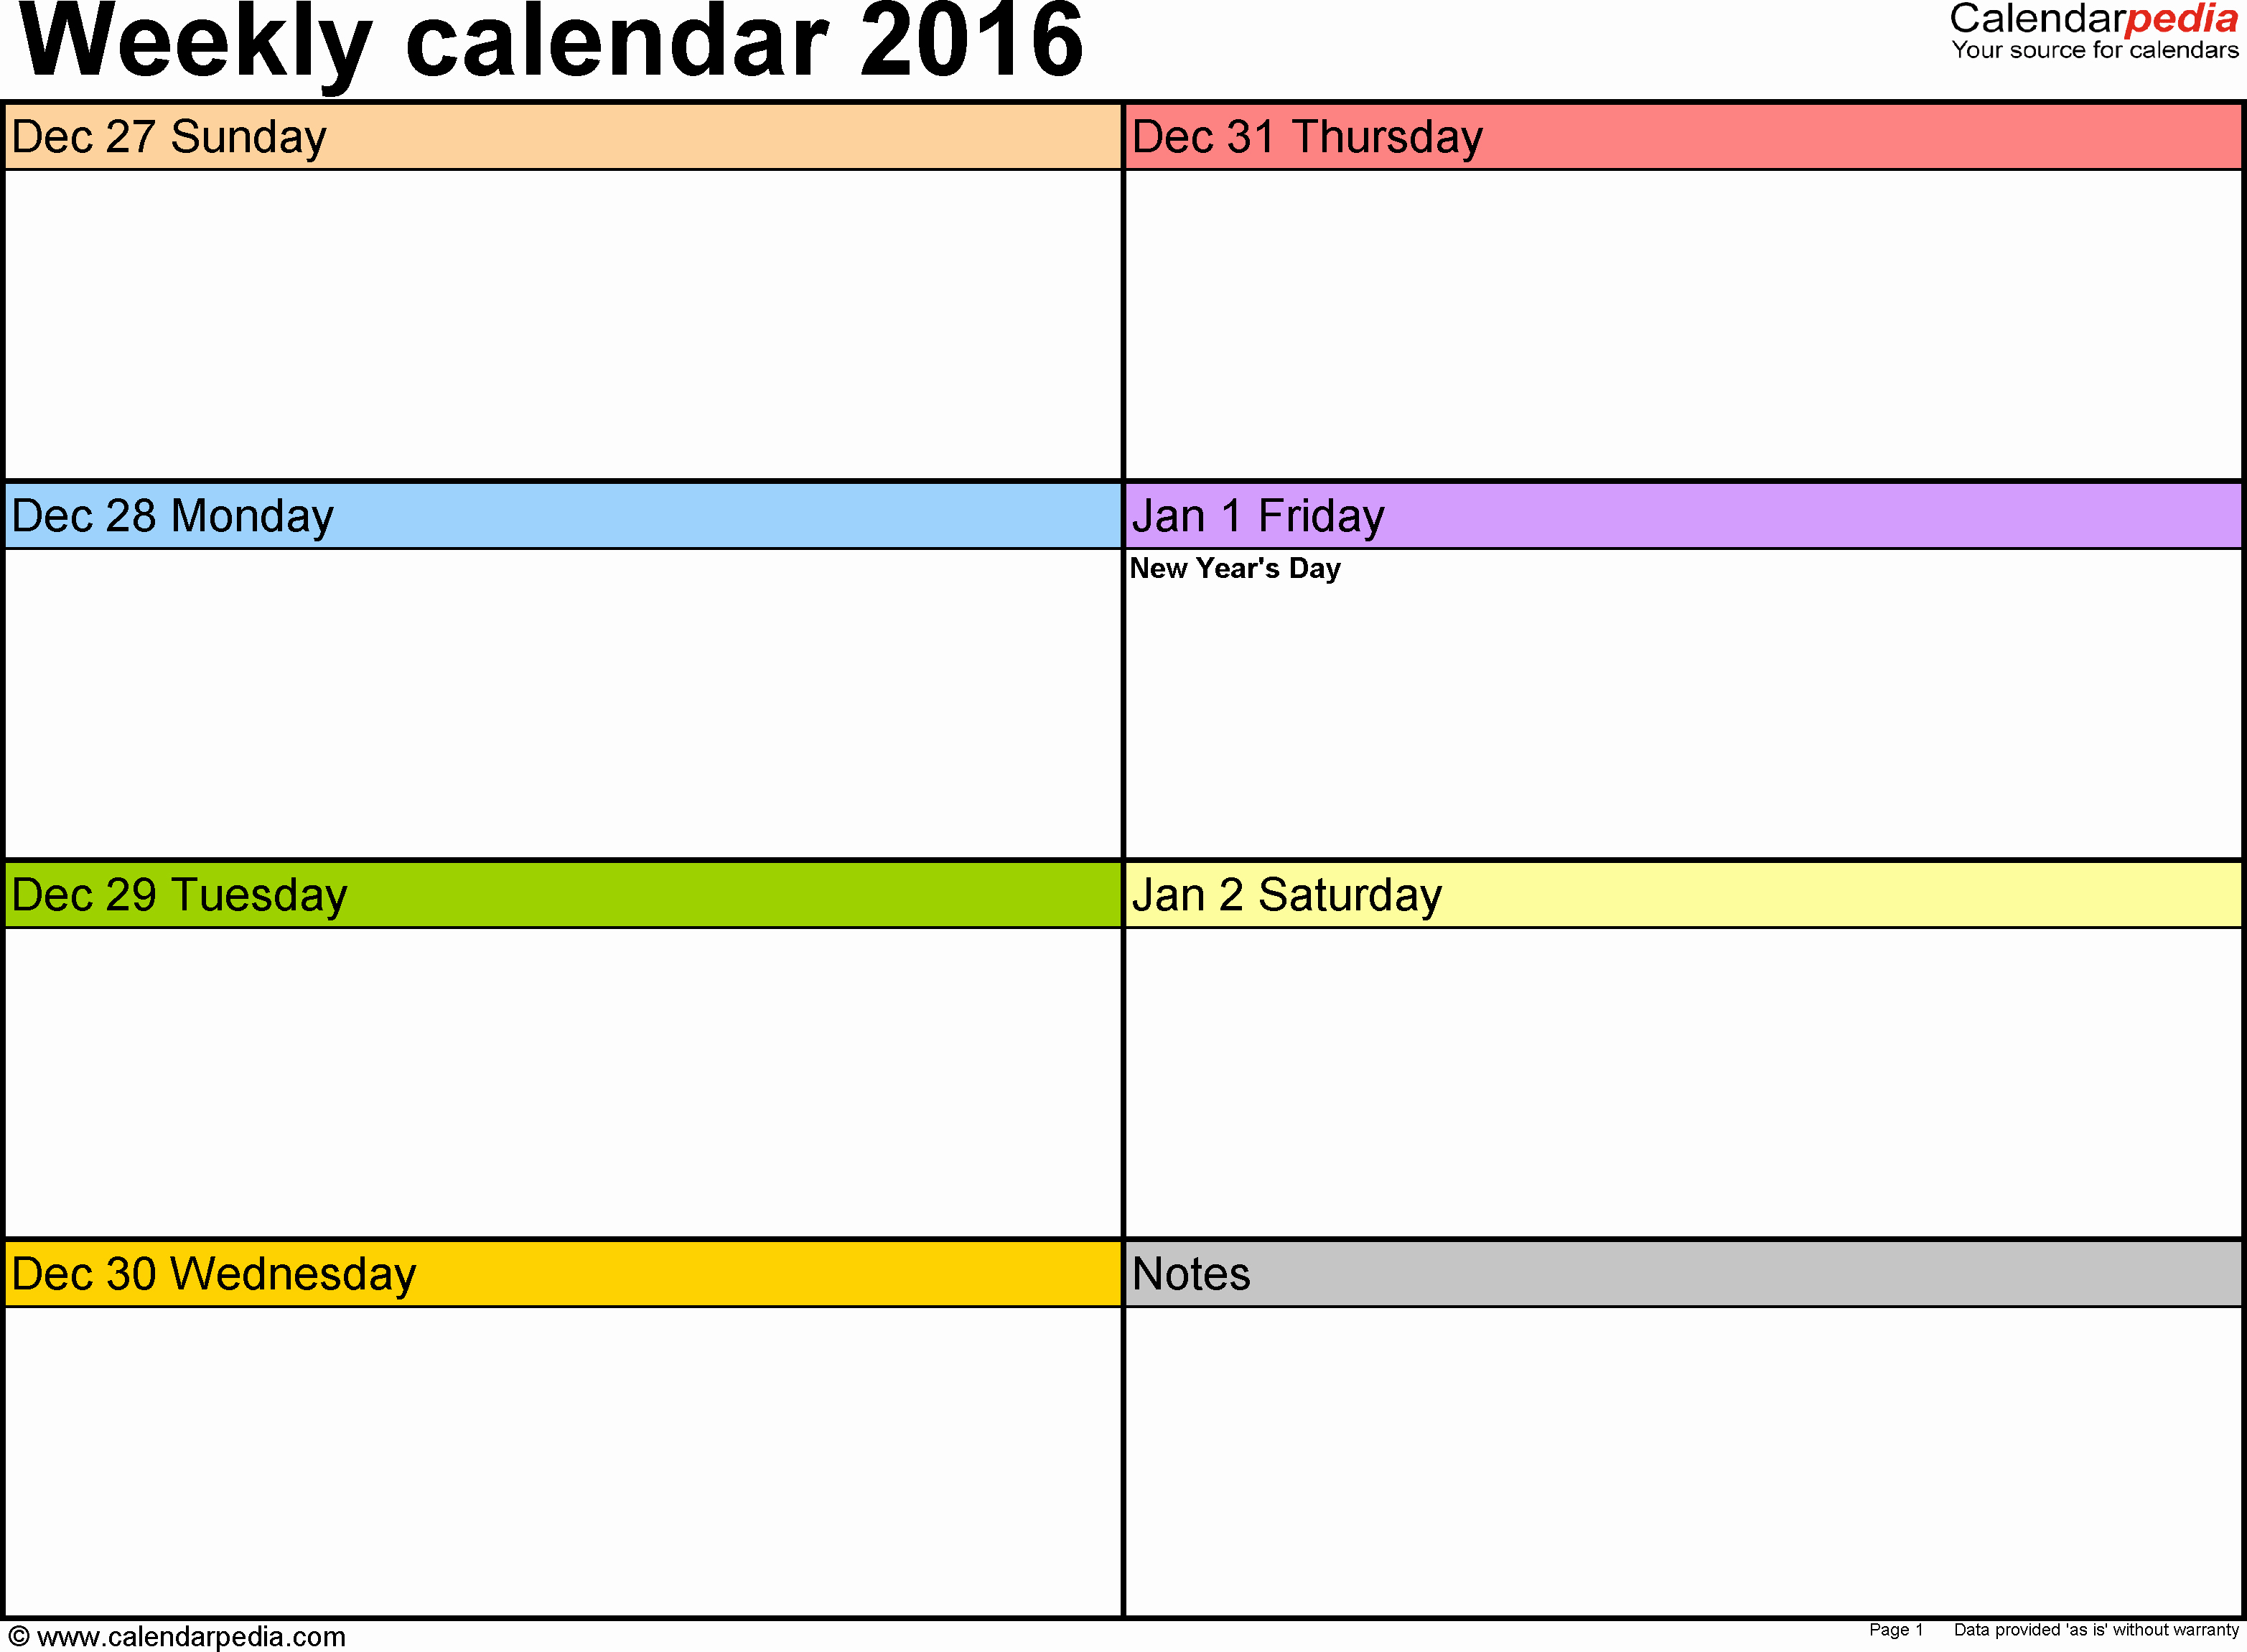 Microsoft Word Weekly Schedule Template Unique Weekly Calendar 2016 for Word 12 Free Printable Templates